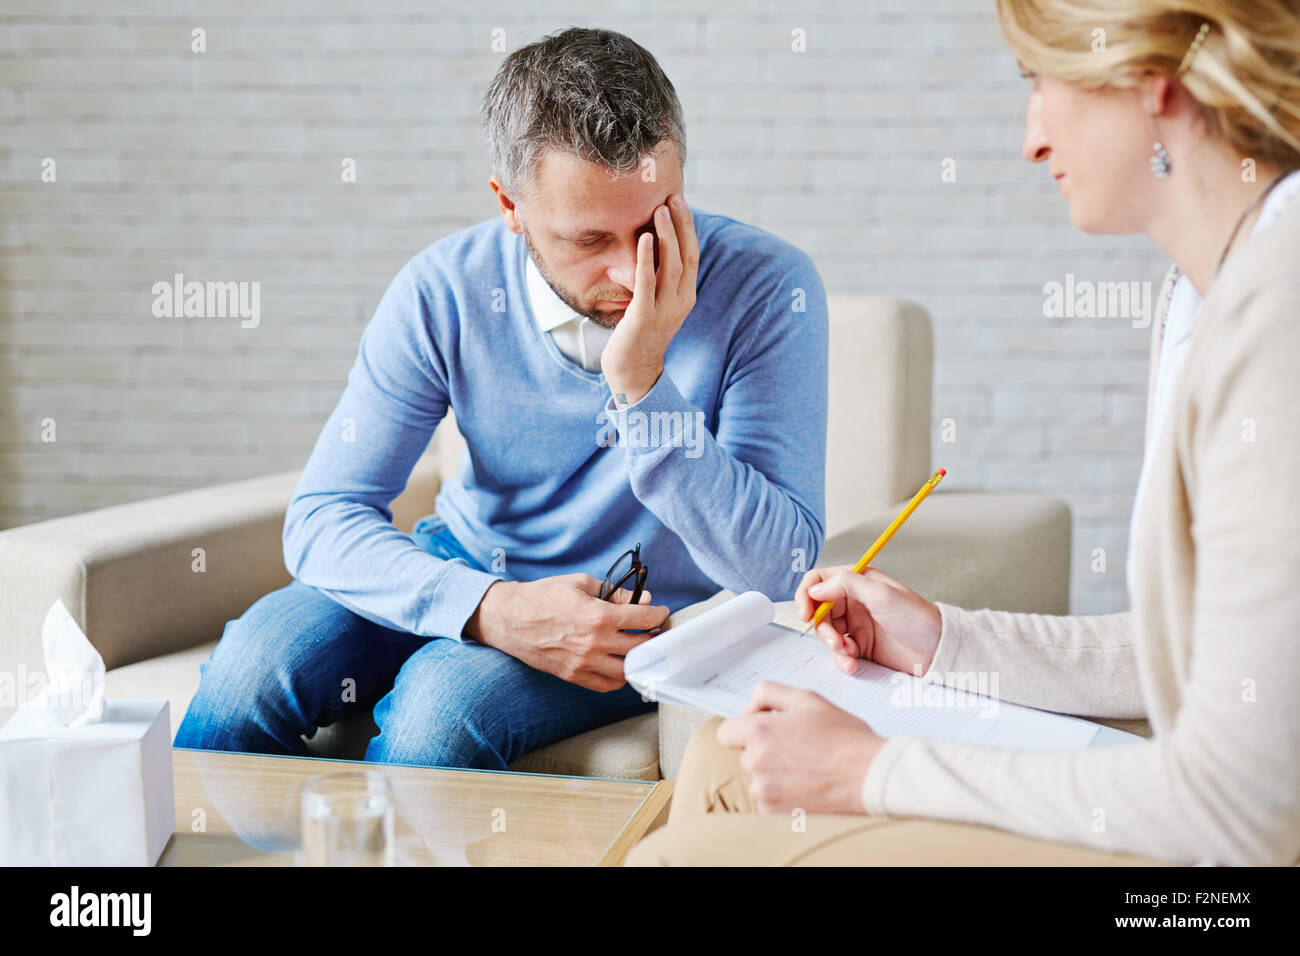 Unhappy patient visiting his psychologist - Stock Image